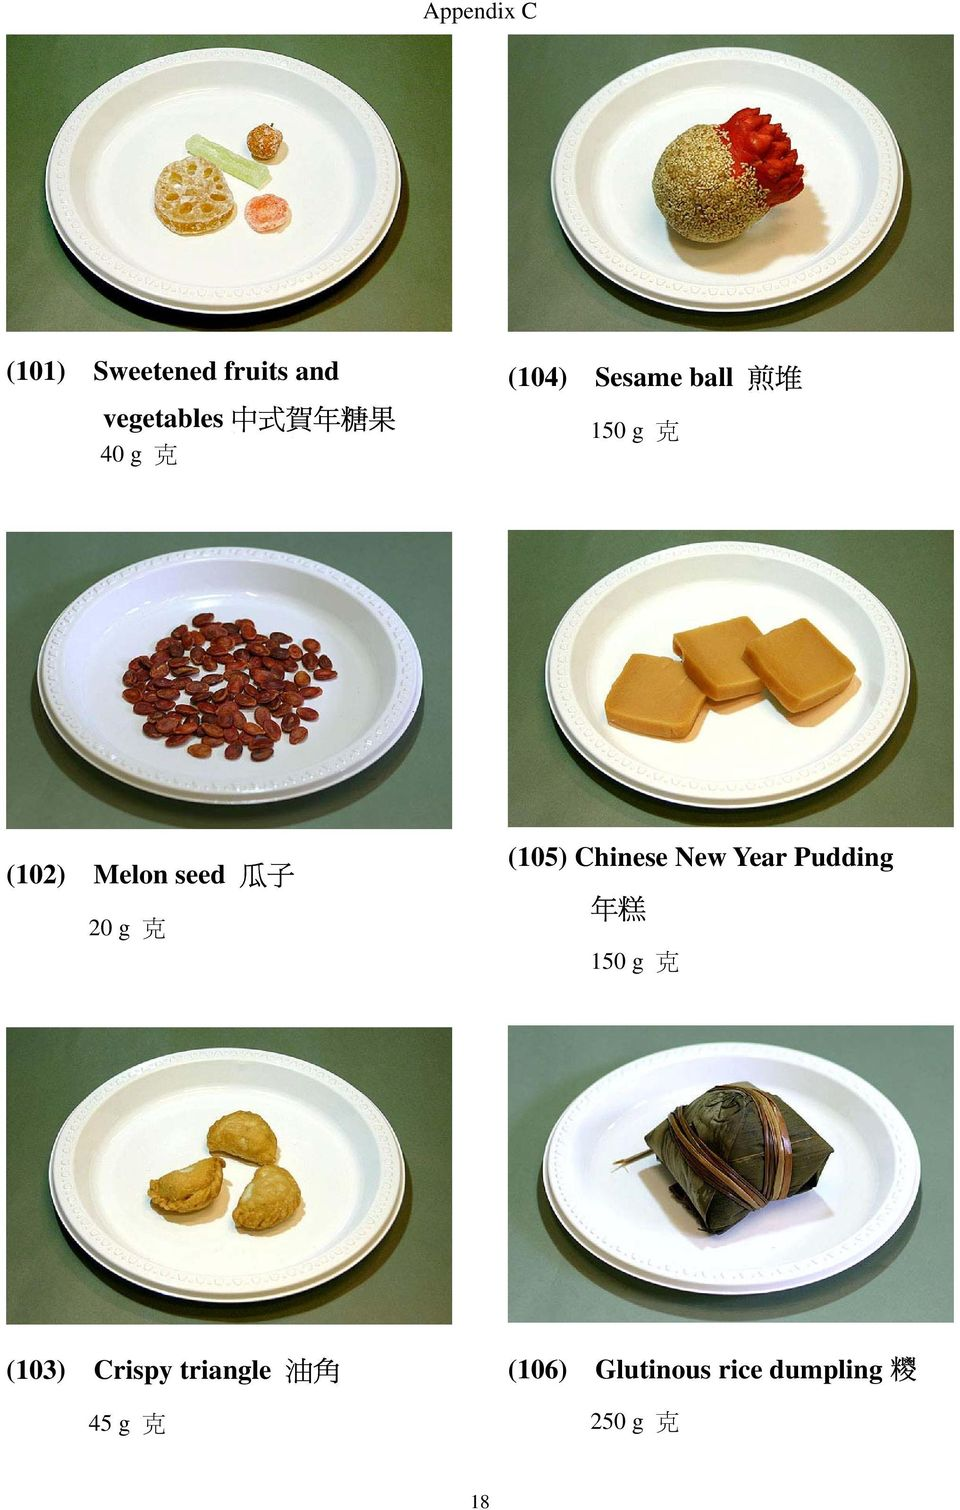 (105) Chinese New Year Pudding 年 糕 150 g 克 (103) Crispy